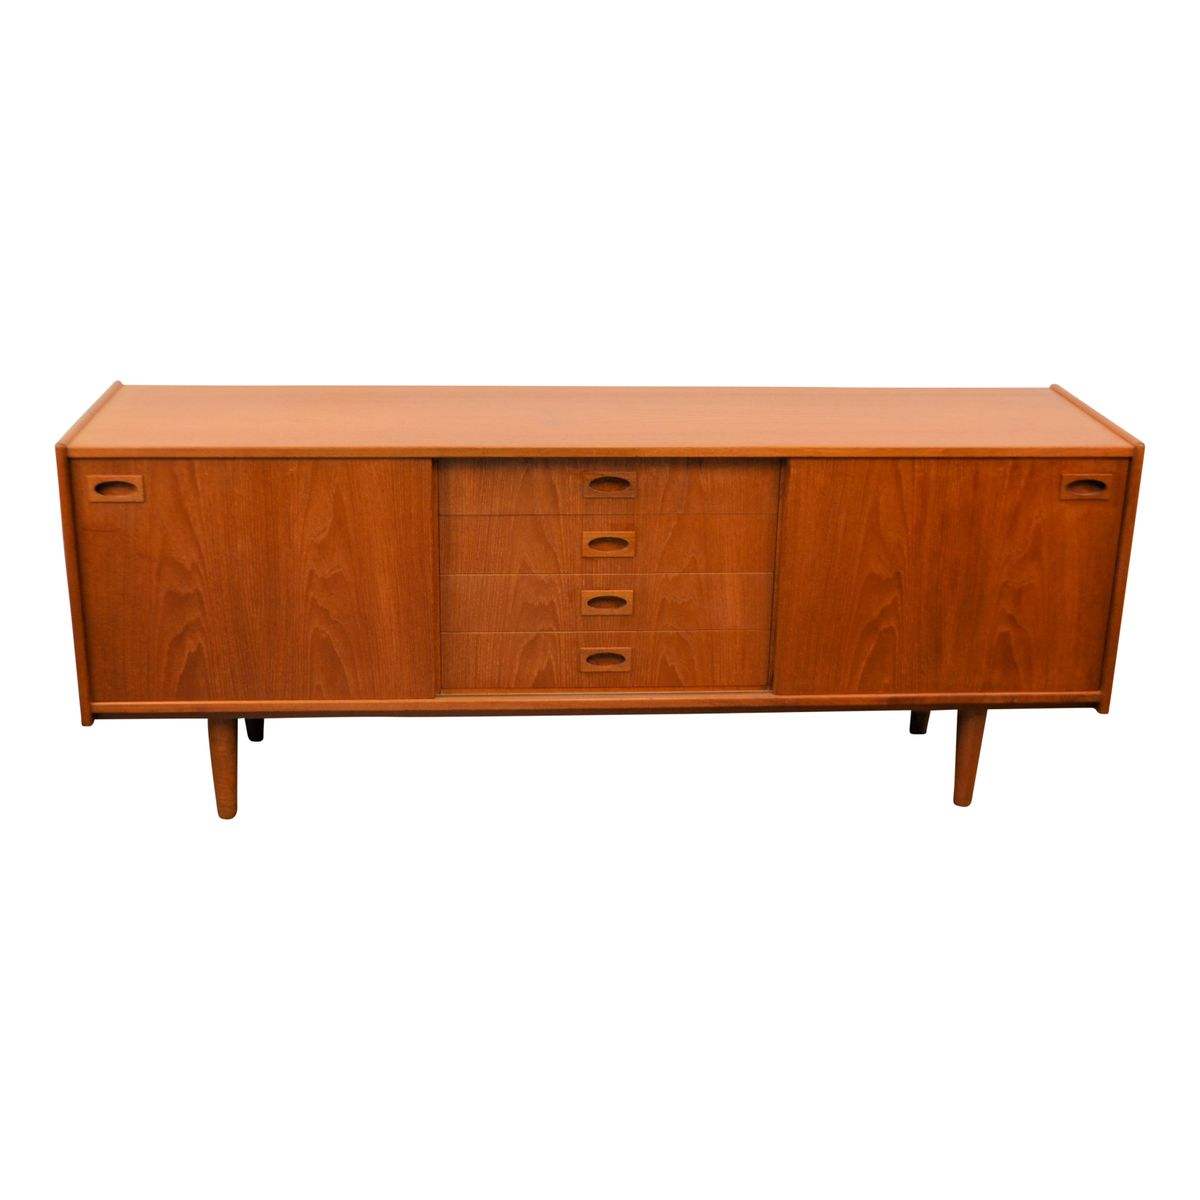 d nisches vintage teak sideboard von mogens kold bei pamono kaufen. Black Bedroom Furniture Sets. Home Design Ideas